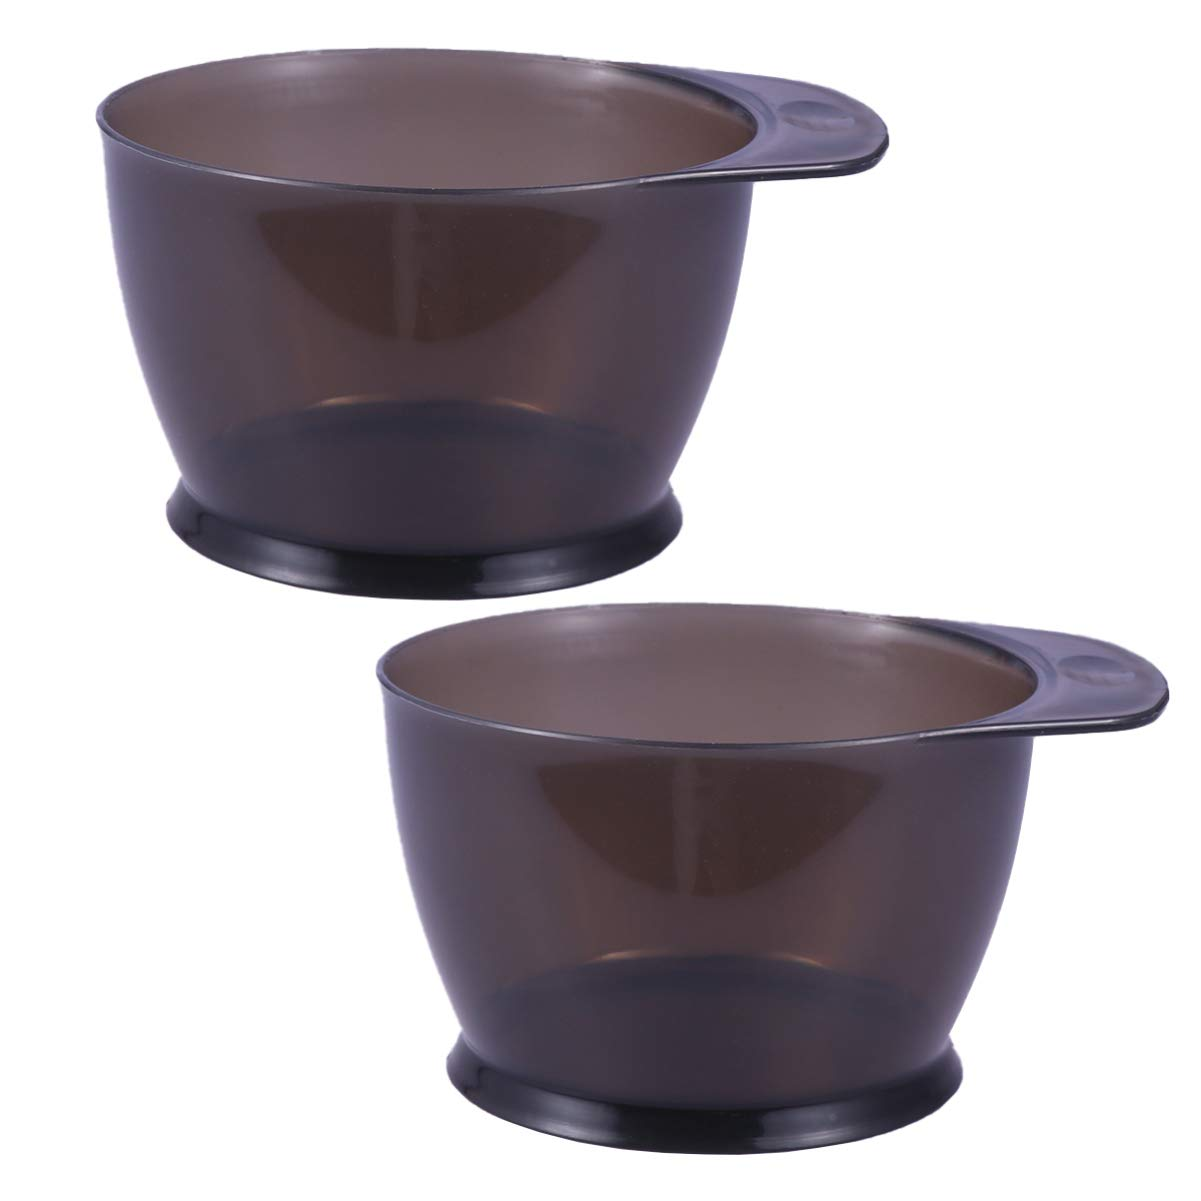 Lurrose 2Pcs Hair Color Bowl Plastic Color Mixing Tint Bowls Dyeing Coloring DIY Oil Treatments Tools for Salon Hairdressing